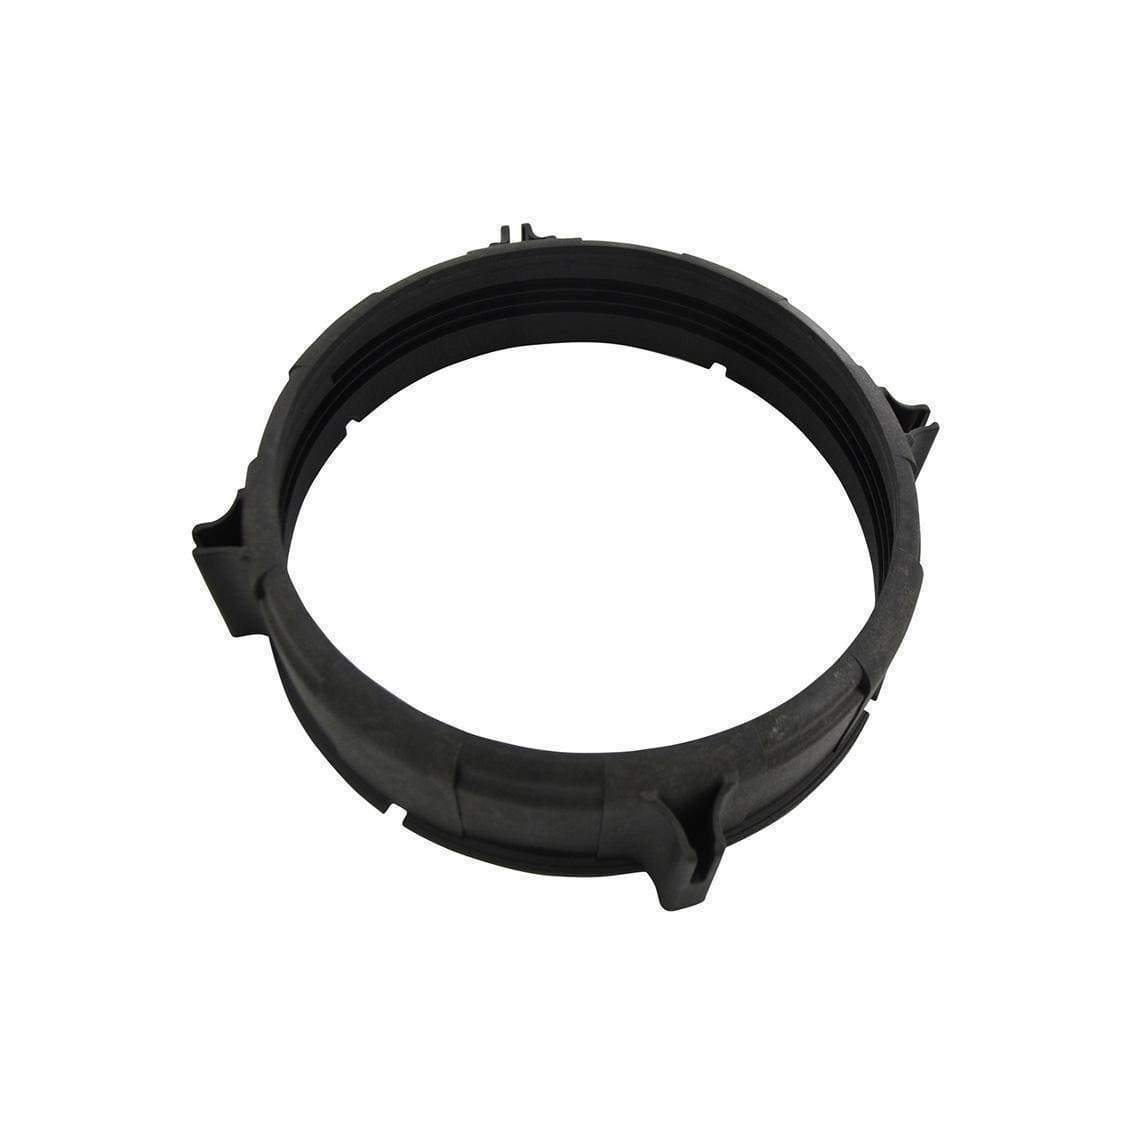 Astral ZX Filter Cartridge Tank Lid Lock Ring-Mr Pool Man